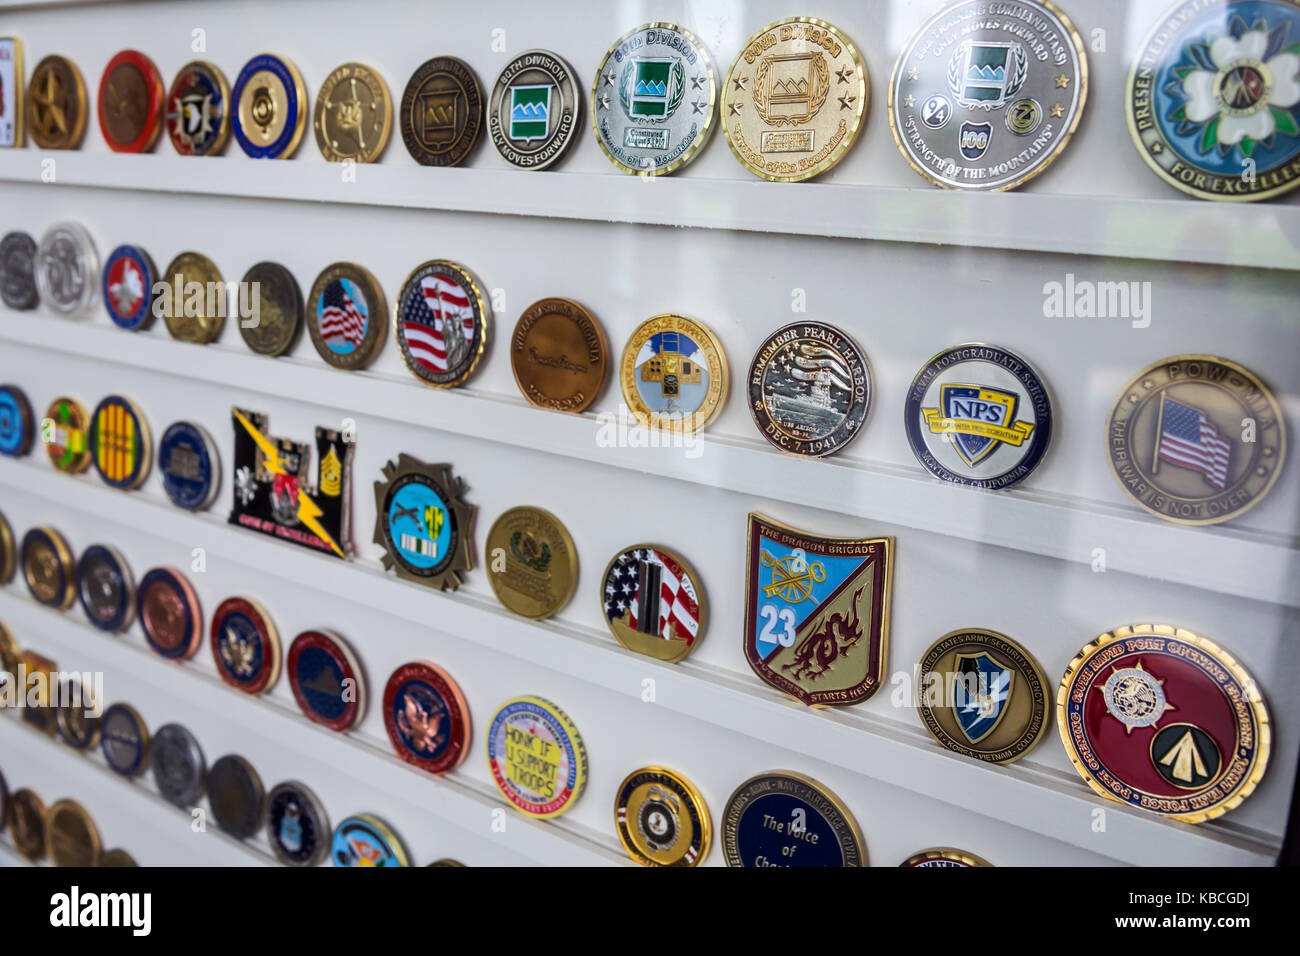 Military Badges Stock Photos & Military Badges Stock Images